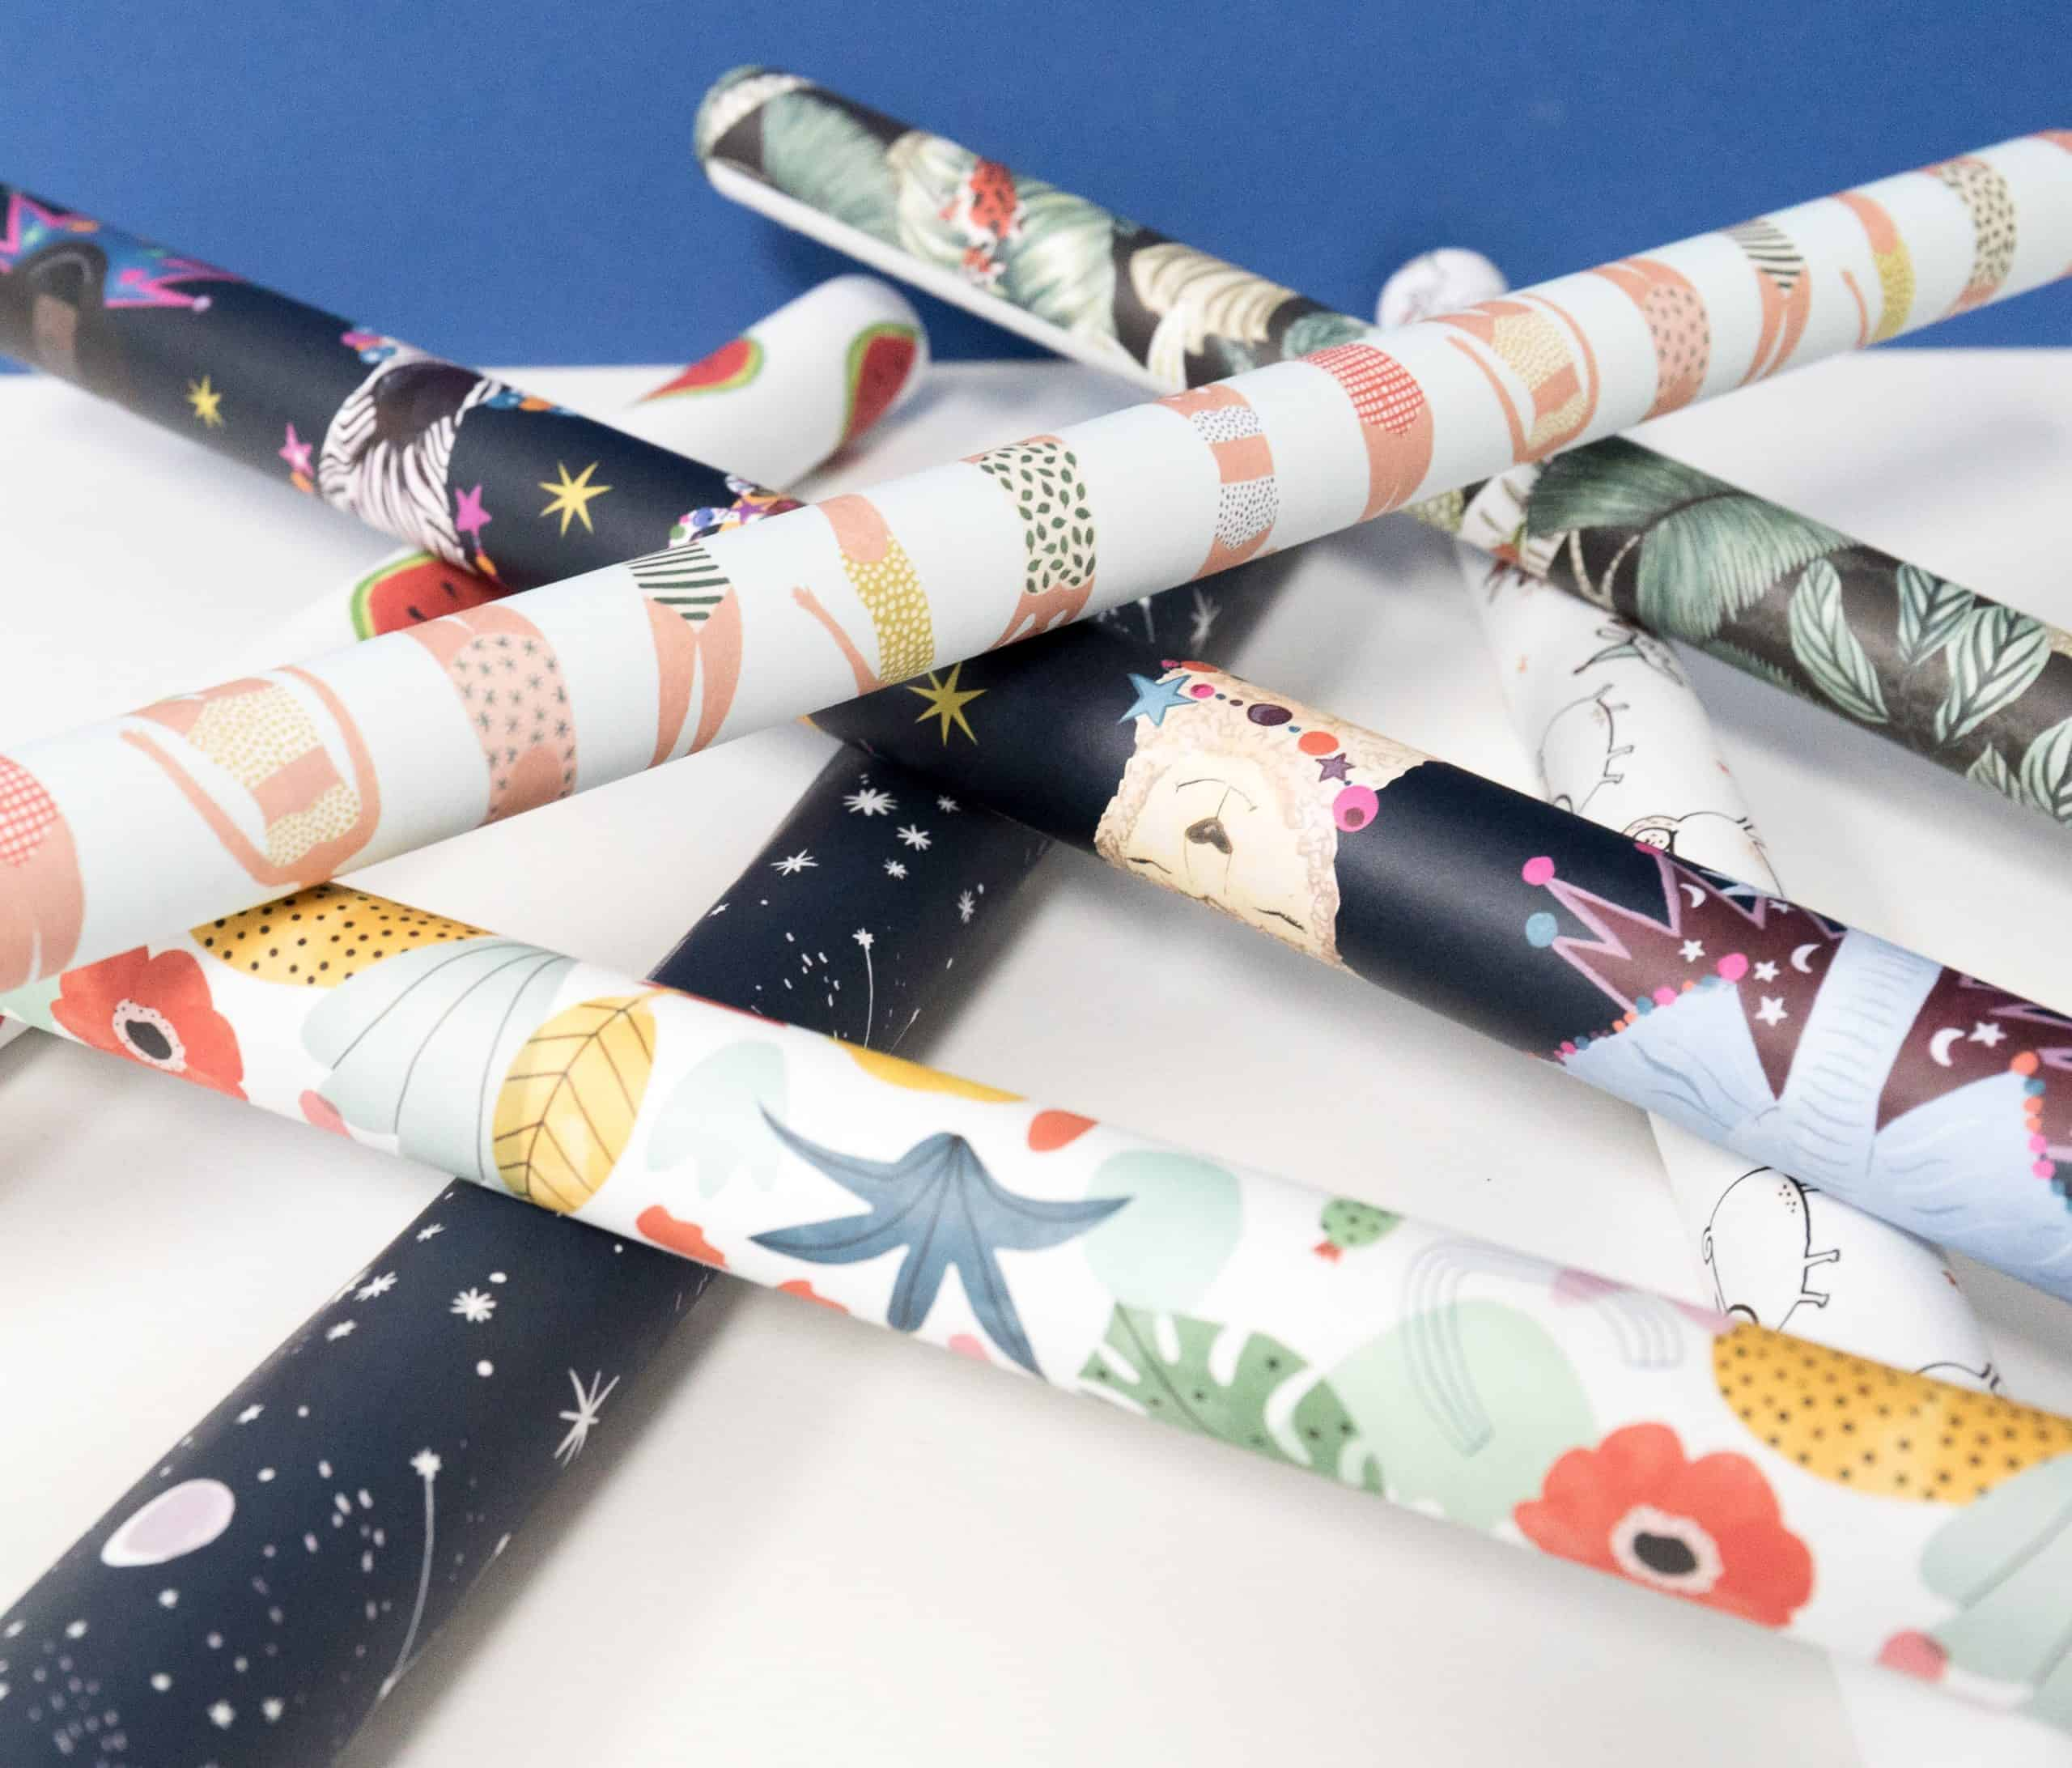 Organize a gift closet - Pile of wrapping paper rolls